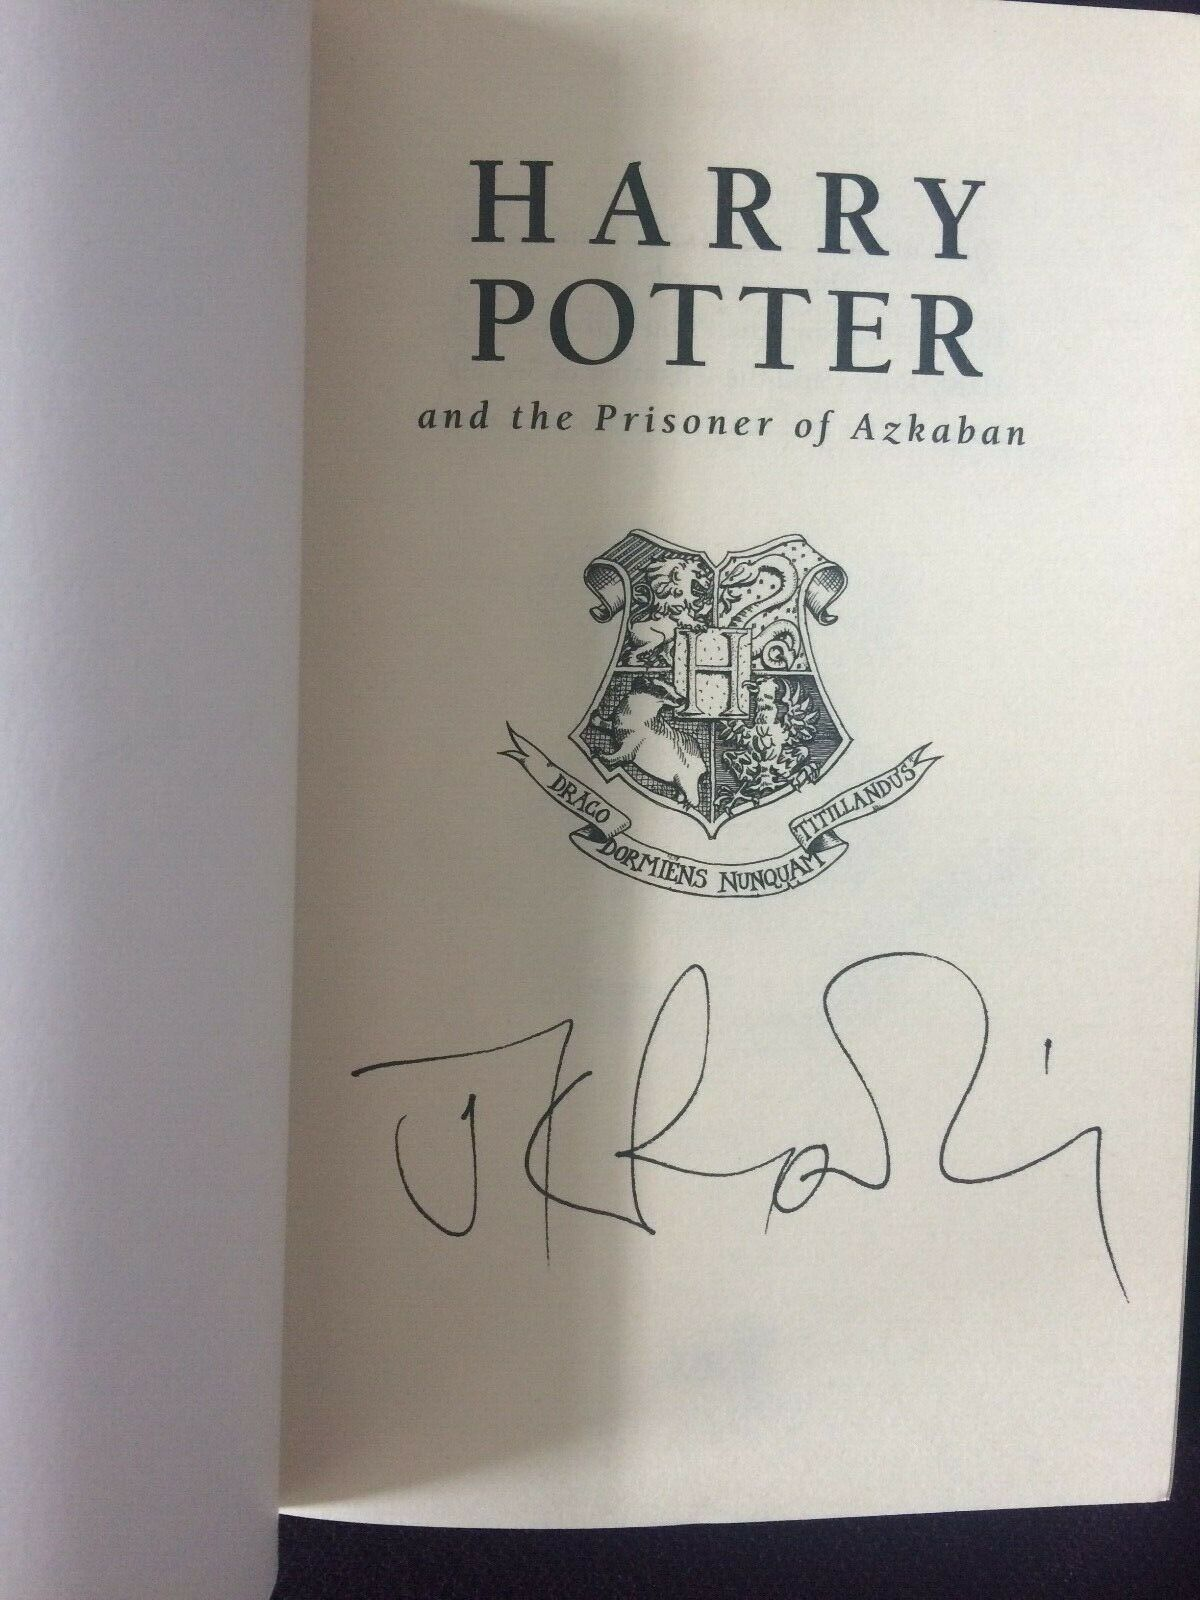 J.K. Rowling signature forgery found inside a UK Harry Potter and the Prisoner of Azkaban on eBay. Sold by beatjup0.